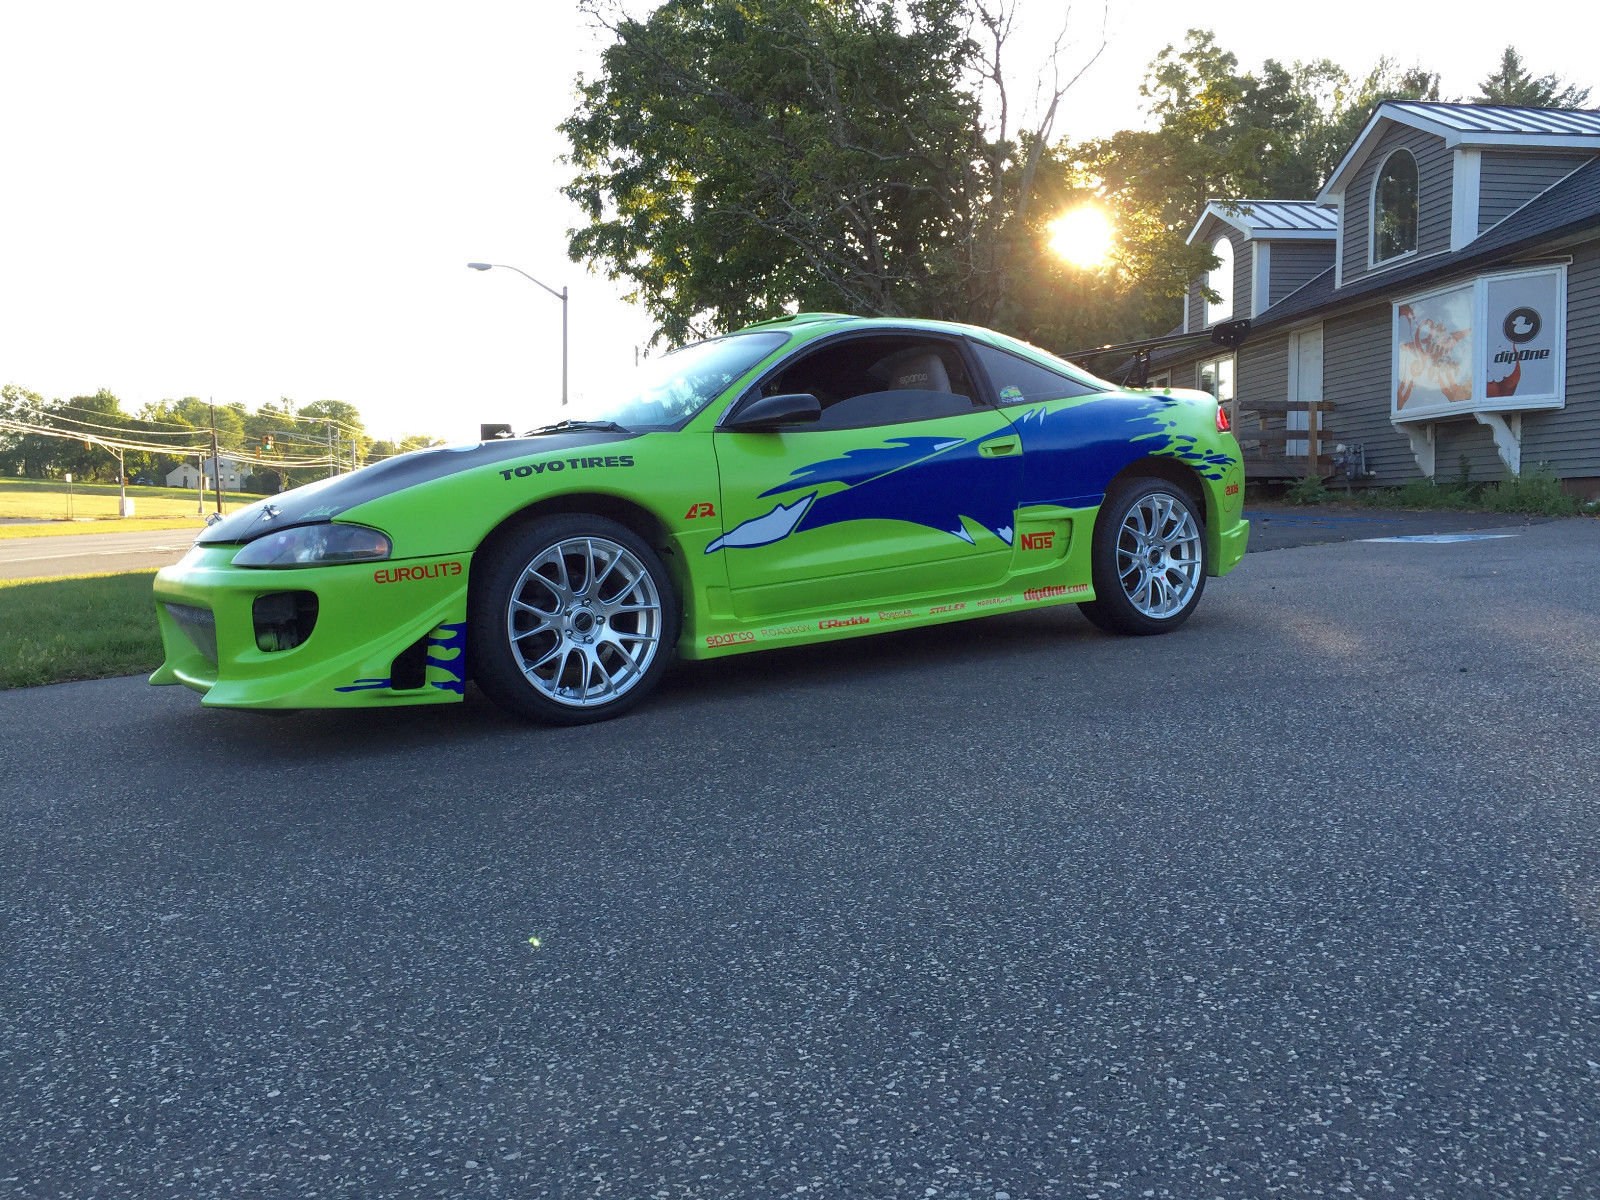 replica of the mitsubishi eclipse paul walker drove in the fast and the furious is on sale. Black Bedroom Furniture Sets. Home Design Ideas